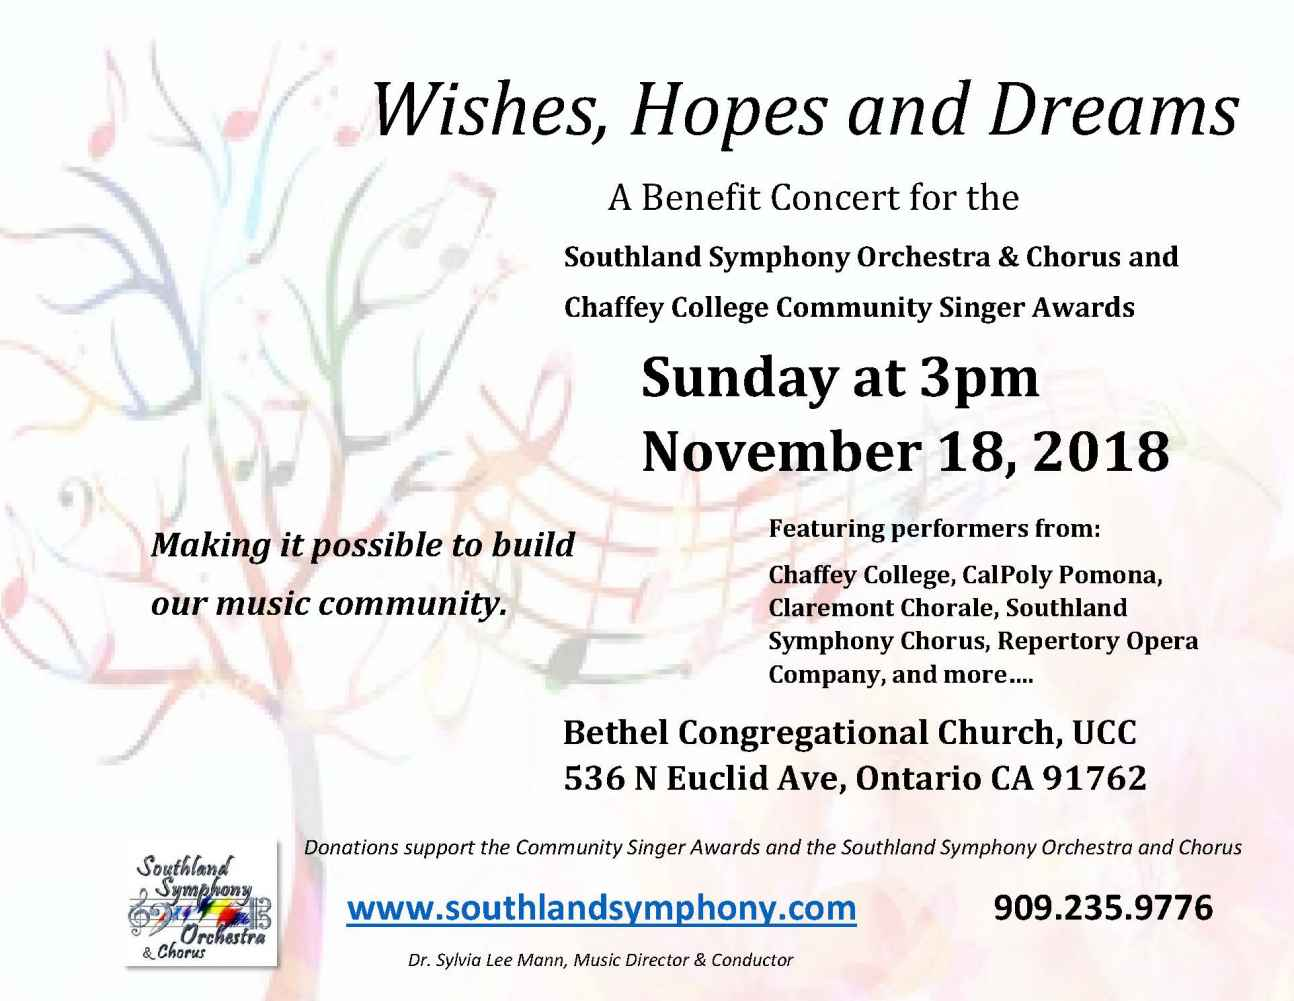 Wishes Hopes and Dreams Flyer 6 david revslm